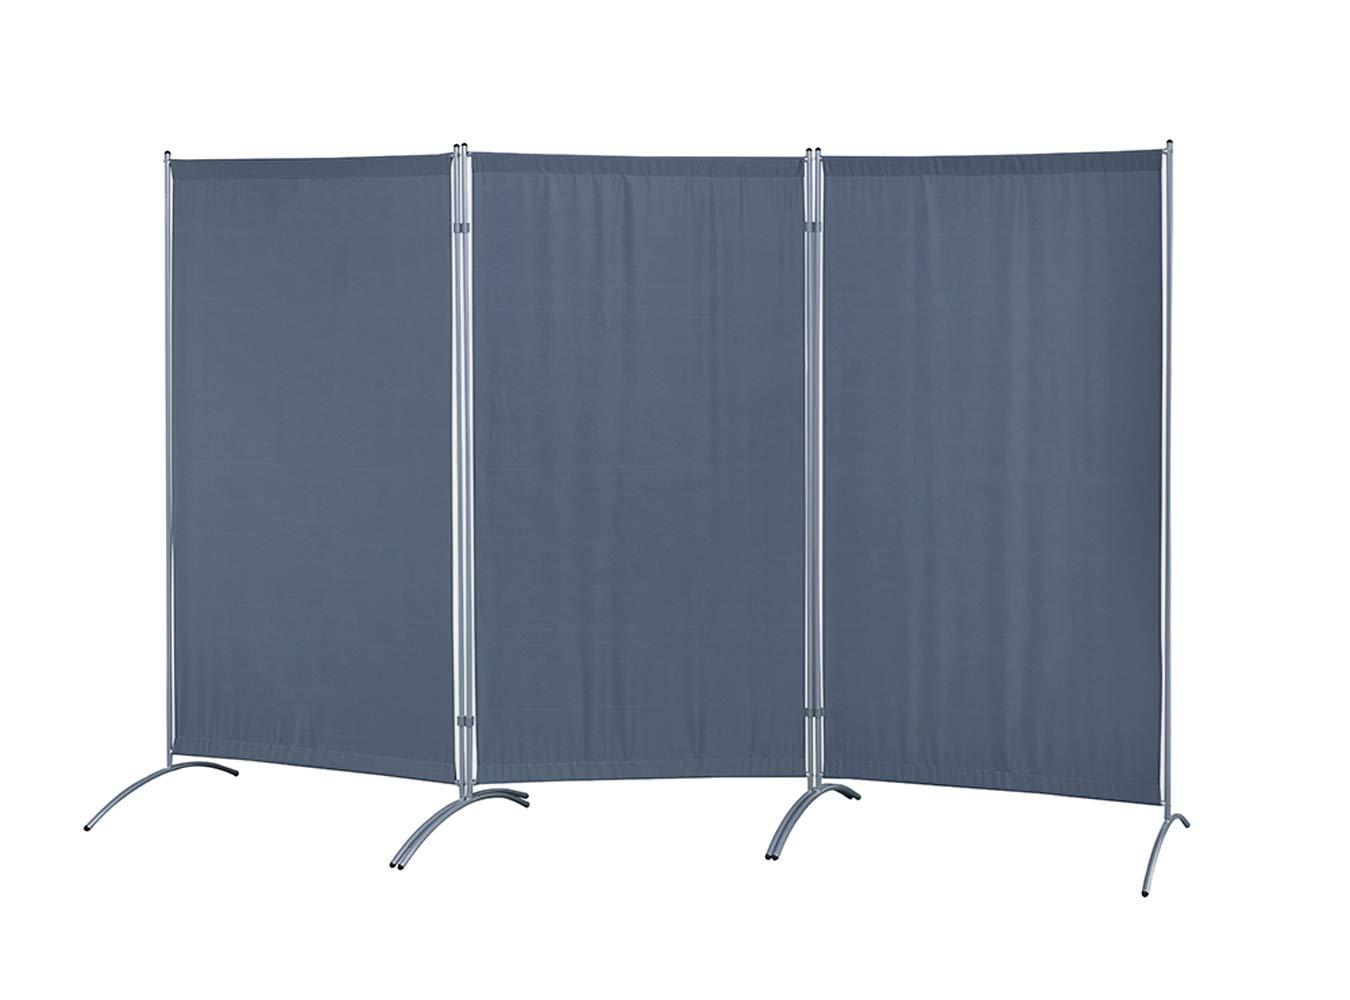 Proman Products Galaxy Indoor Room Divider (3-Panel), 102'' W x 23'' D x 71'' H, Gray by Proman Products